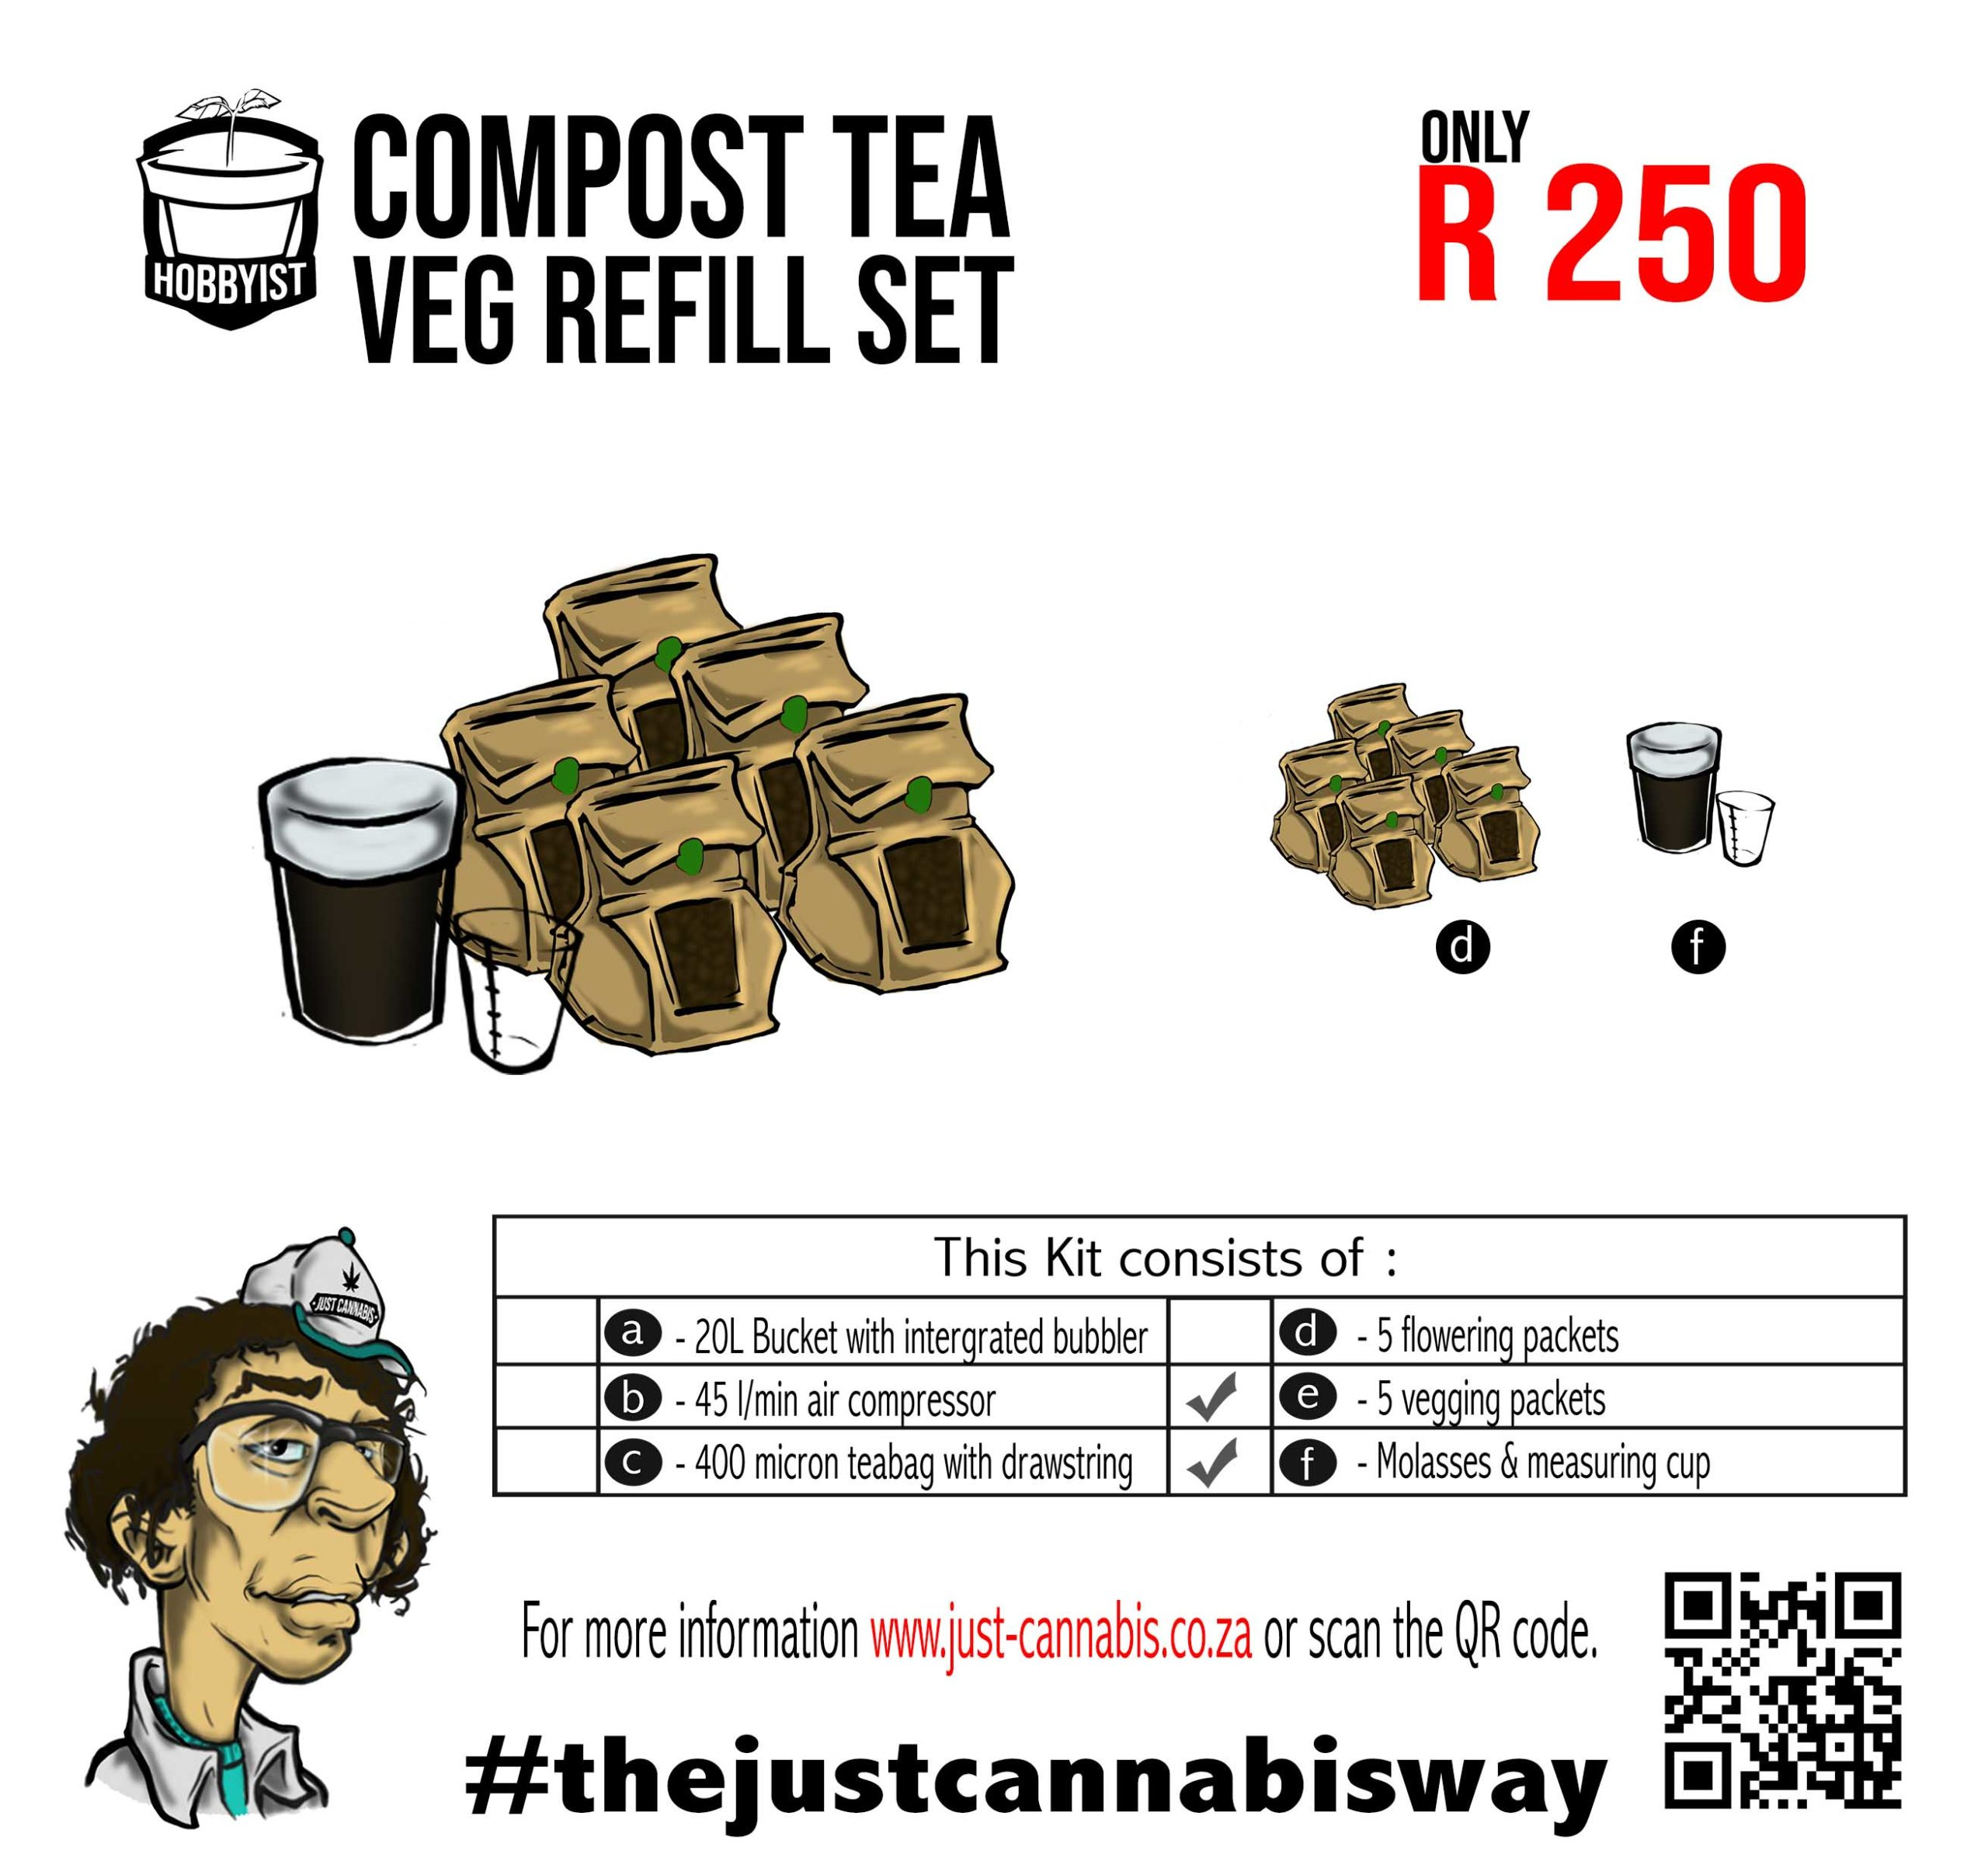 Hobbyist Compost Tea Veg Refill Kit